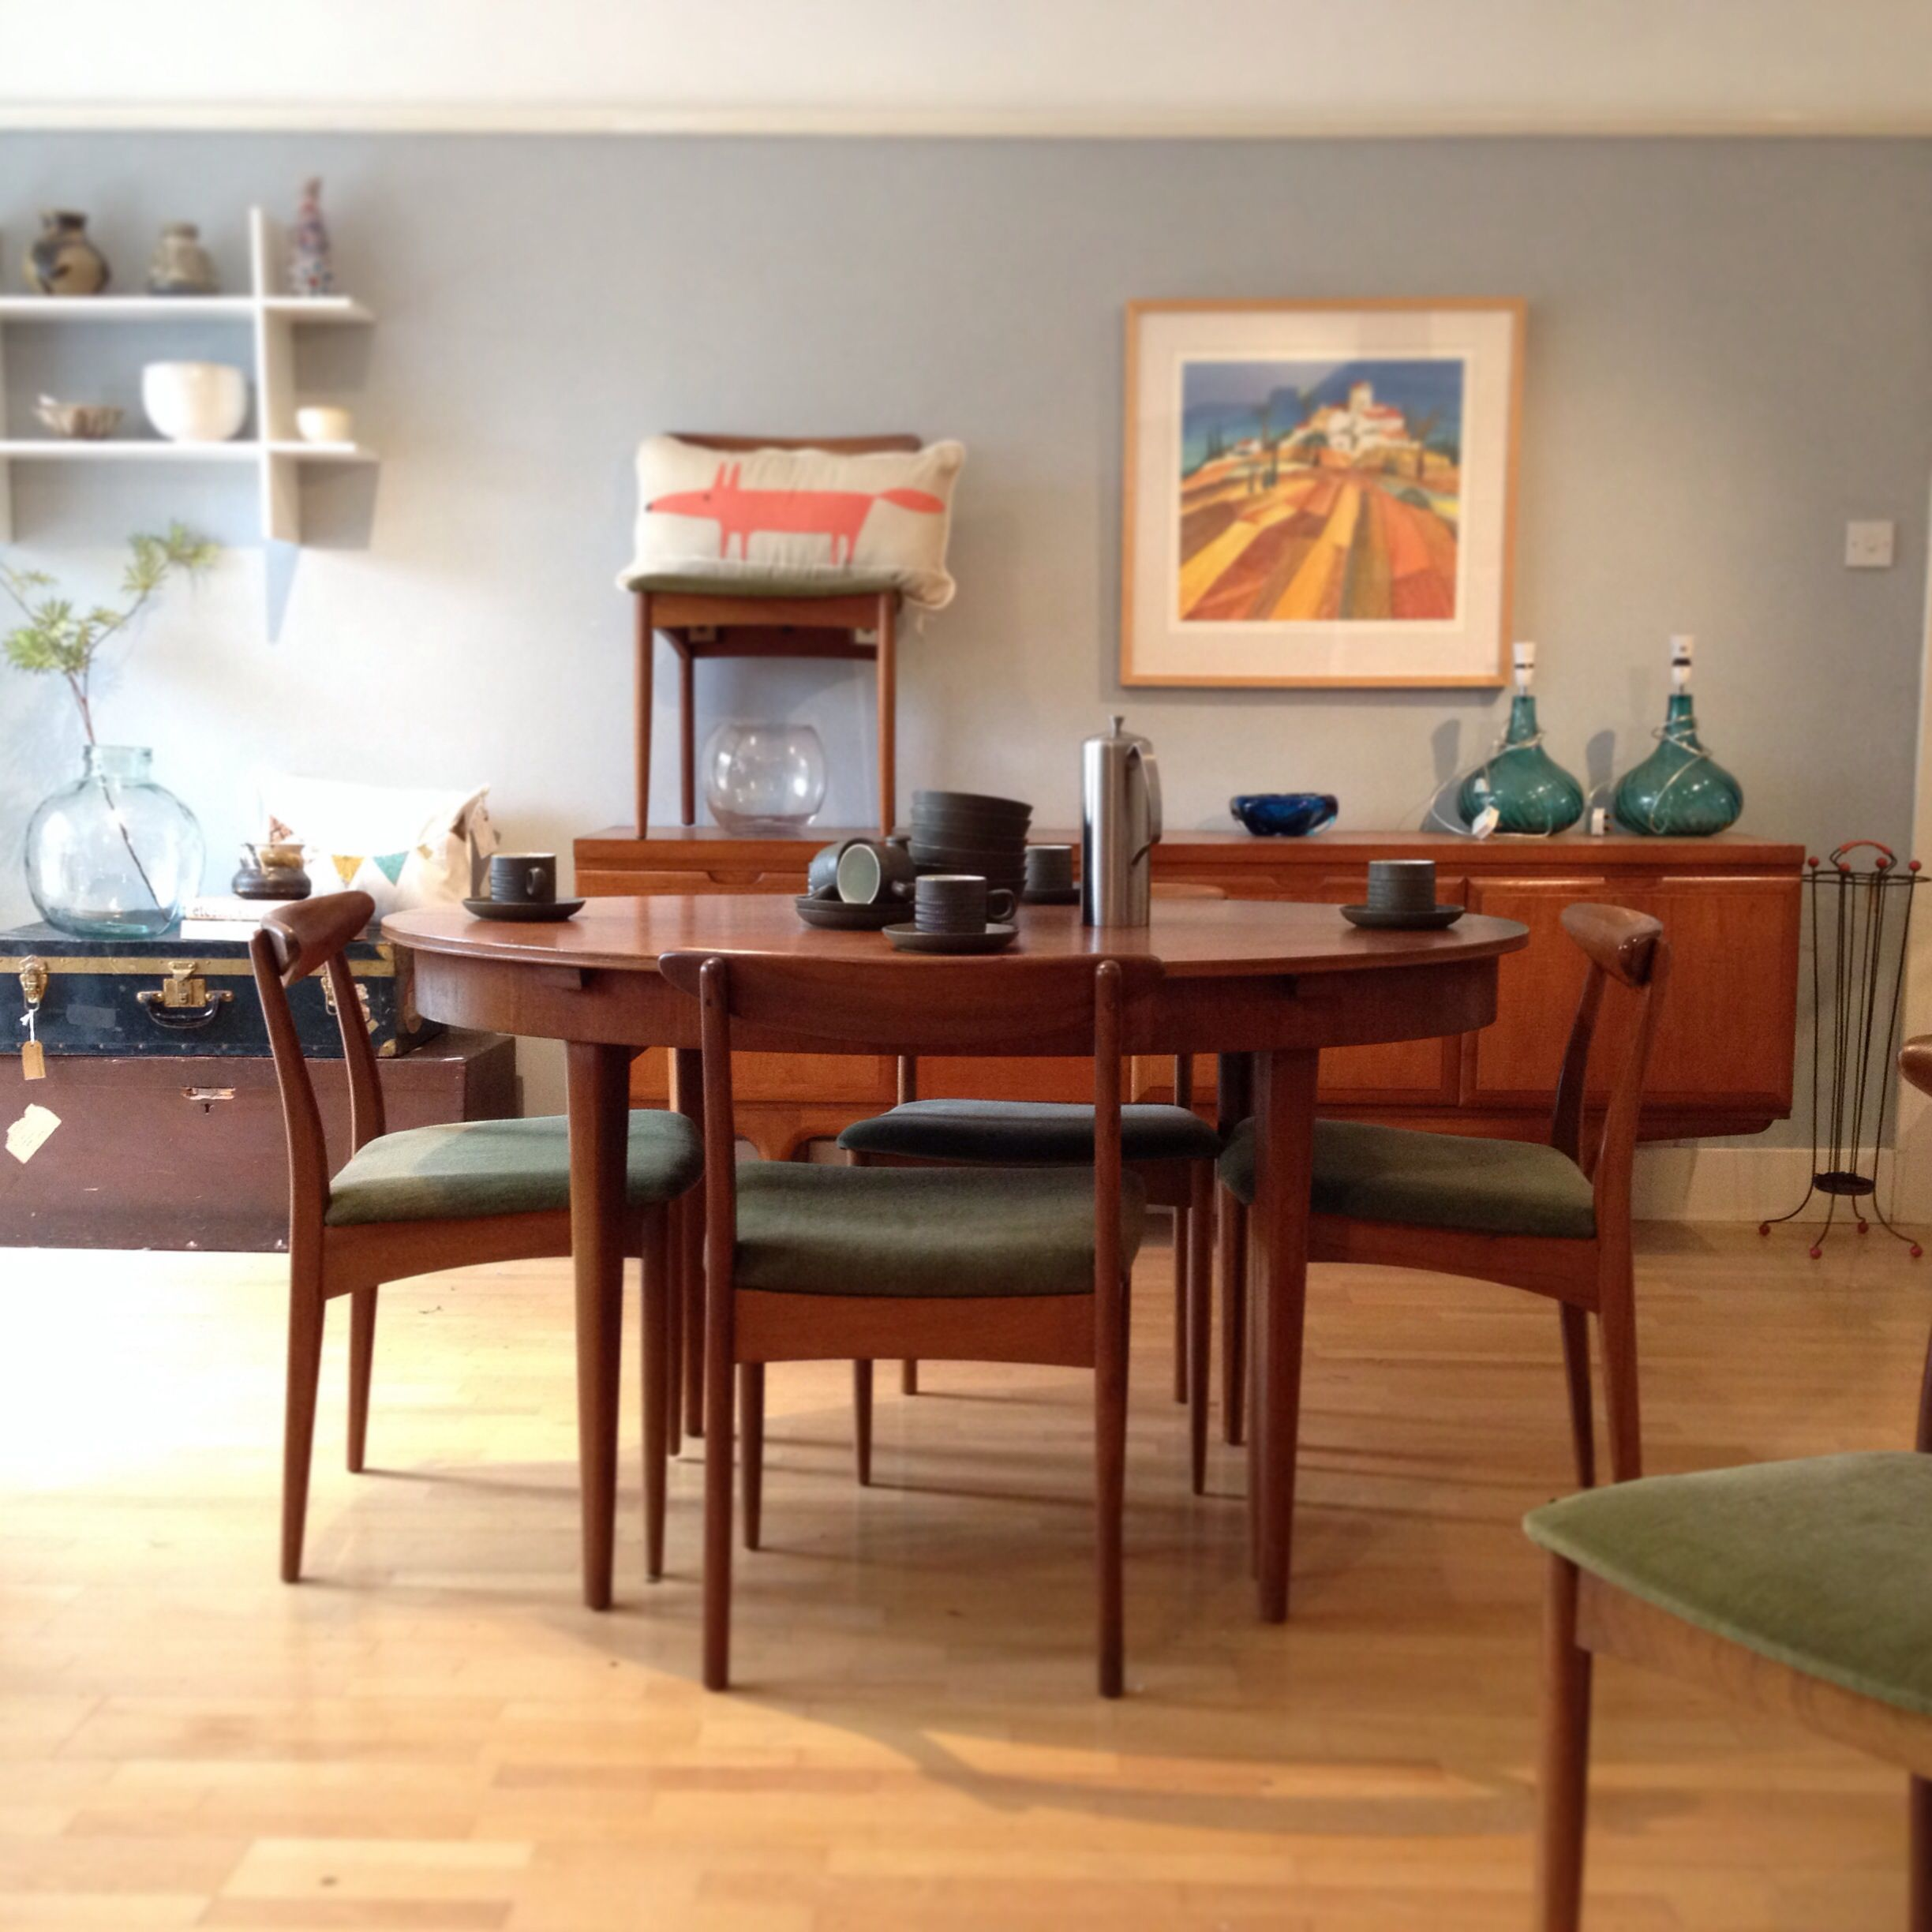 60s Style Couches Sixties Retro Danish Style Teak Dining Room Furniture At